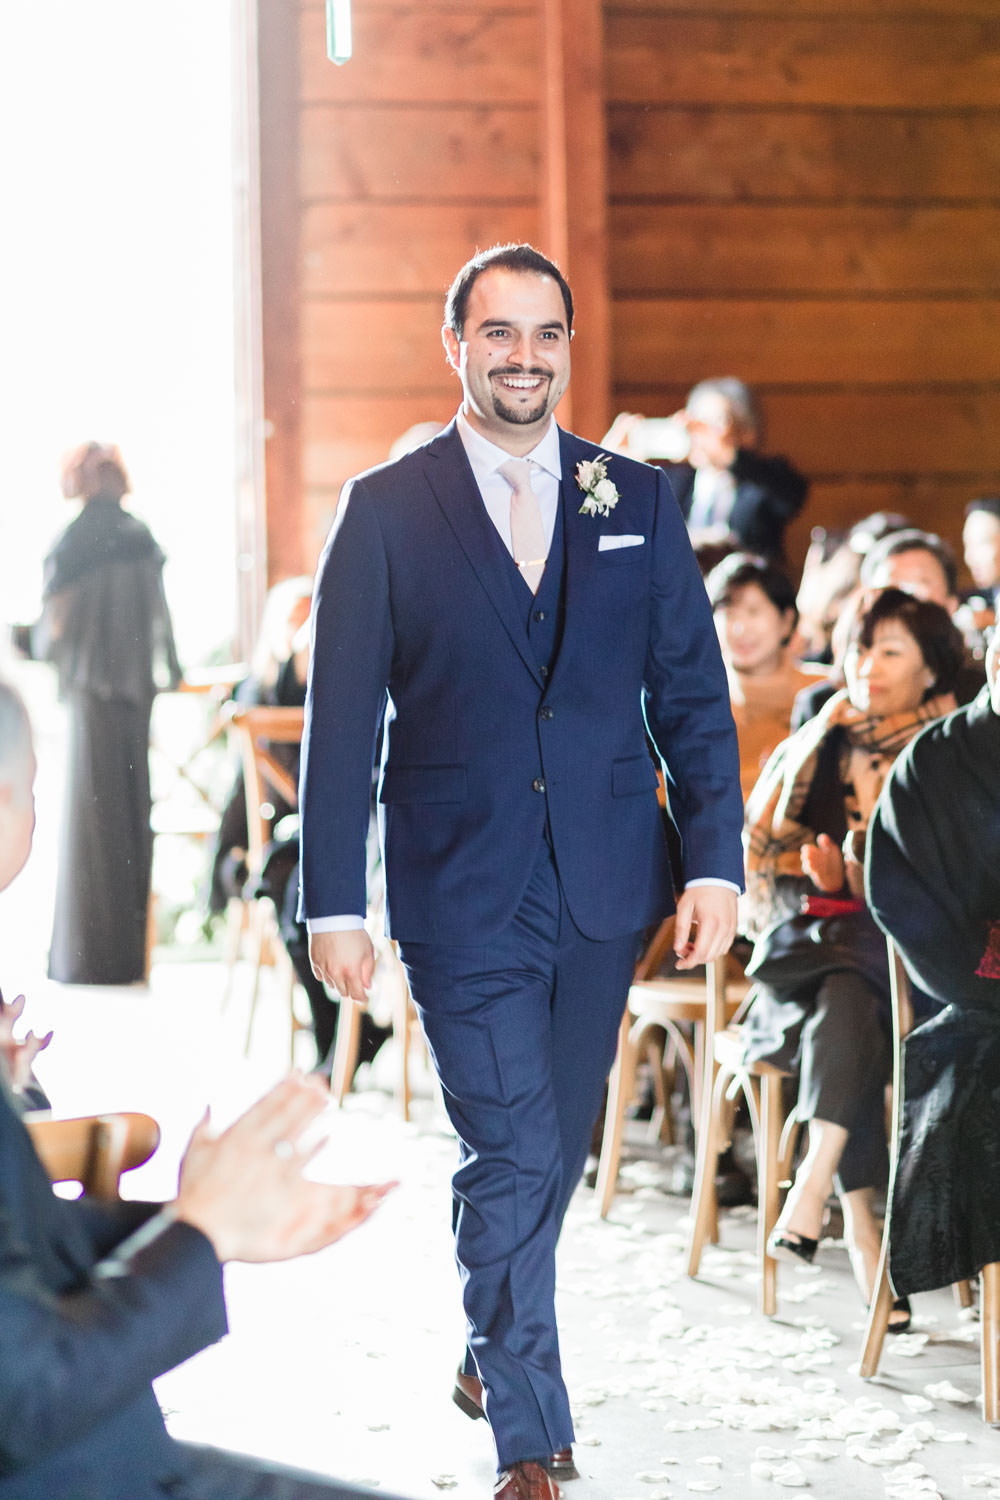 Groom walking down aisle for ceremony at Ethereal Open Air Resort, Cavin Elizabeth Photography